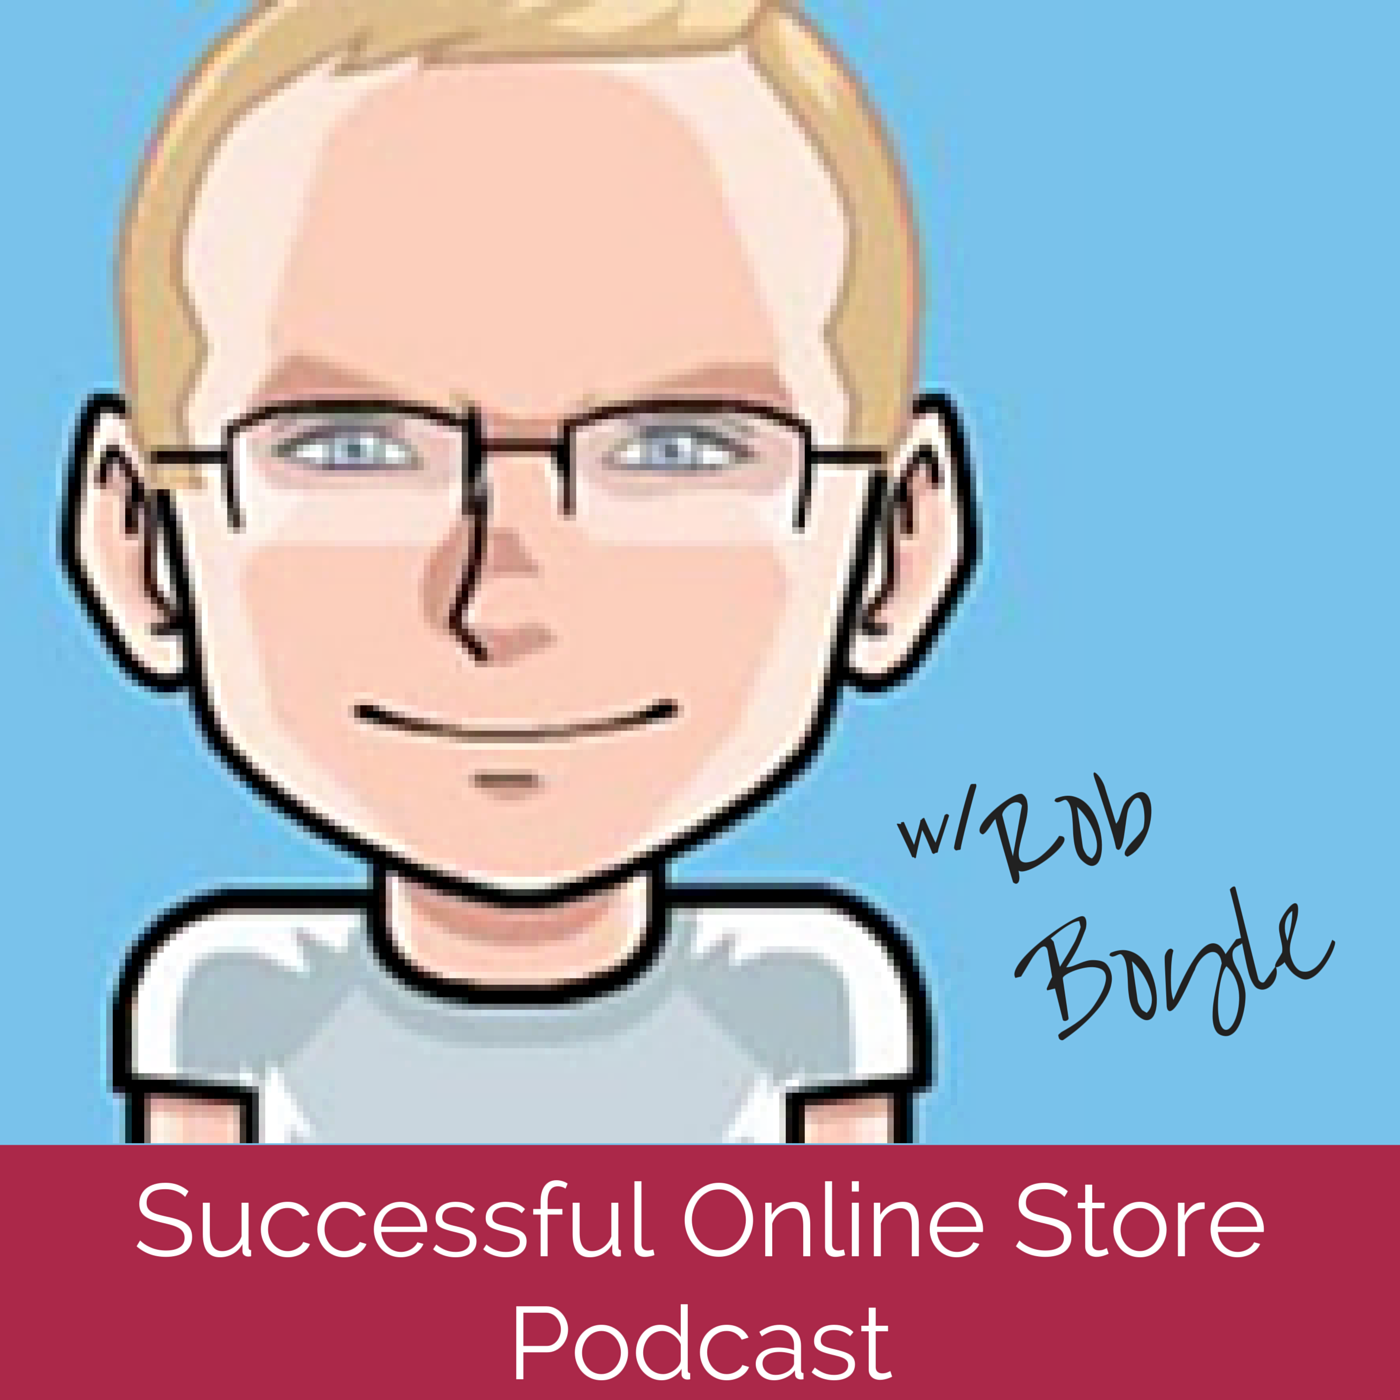 Successful Online Store Podcast